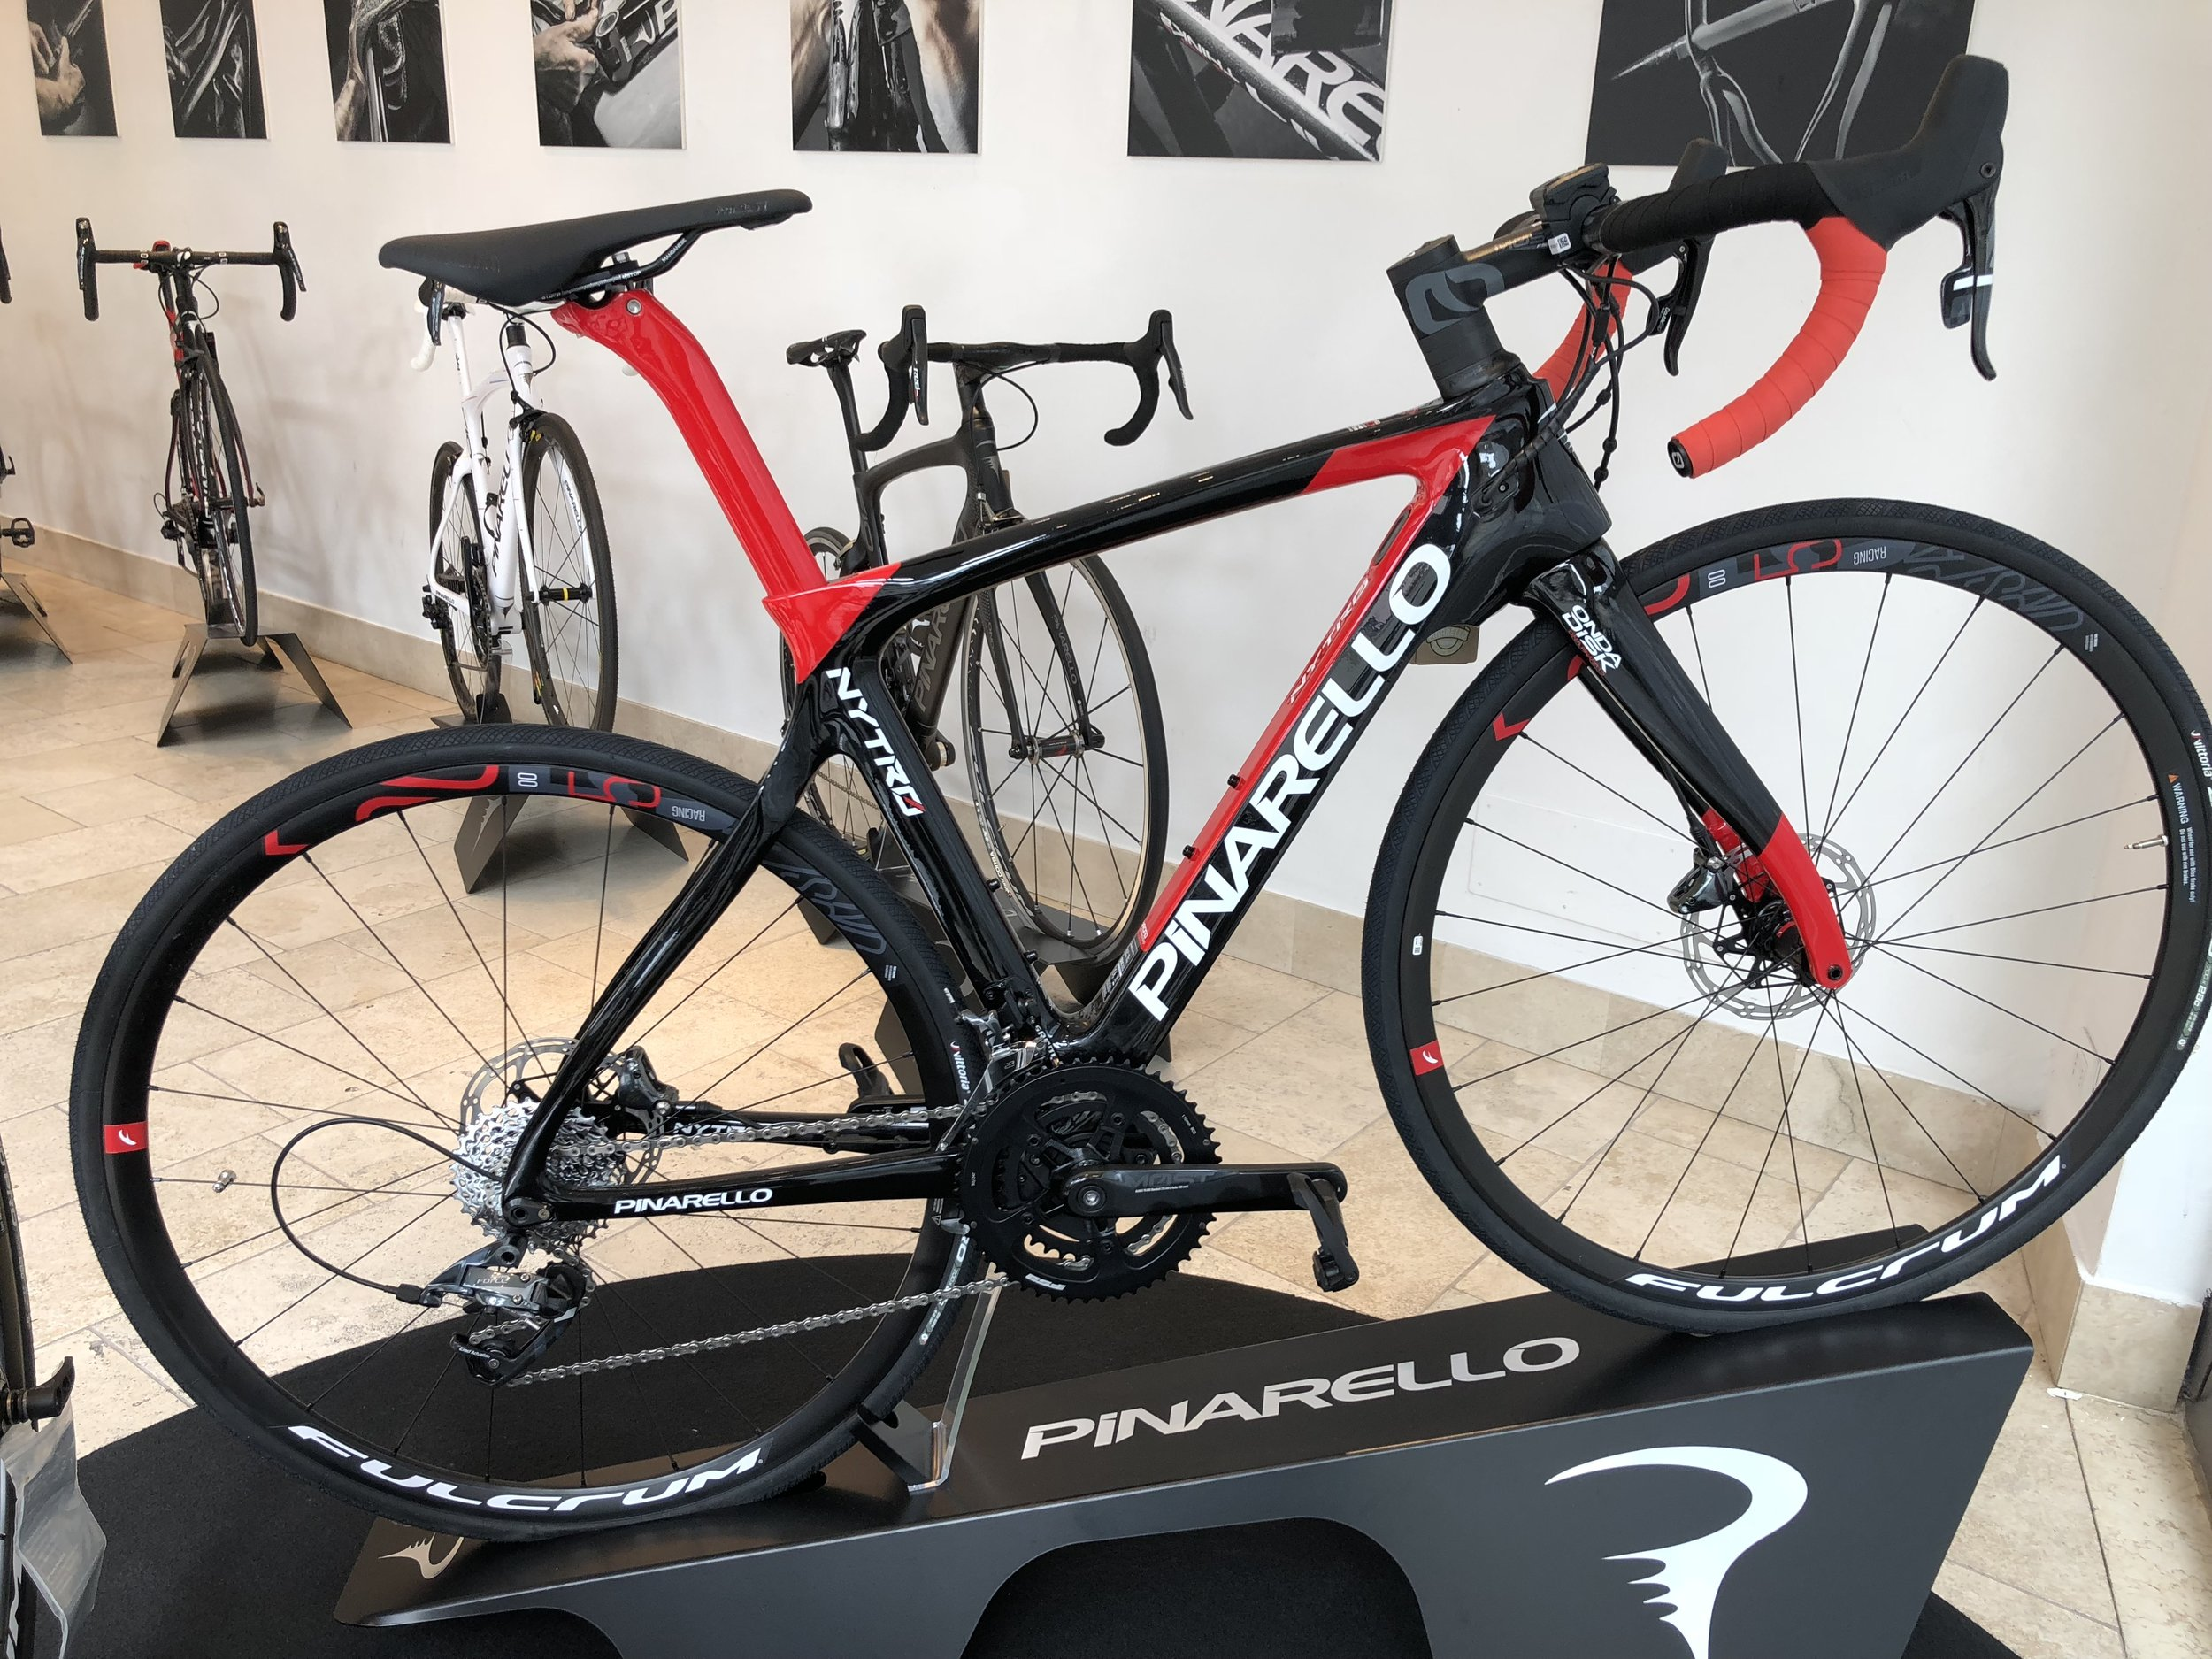 The new Pinarello pedal assisted bike